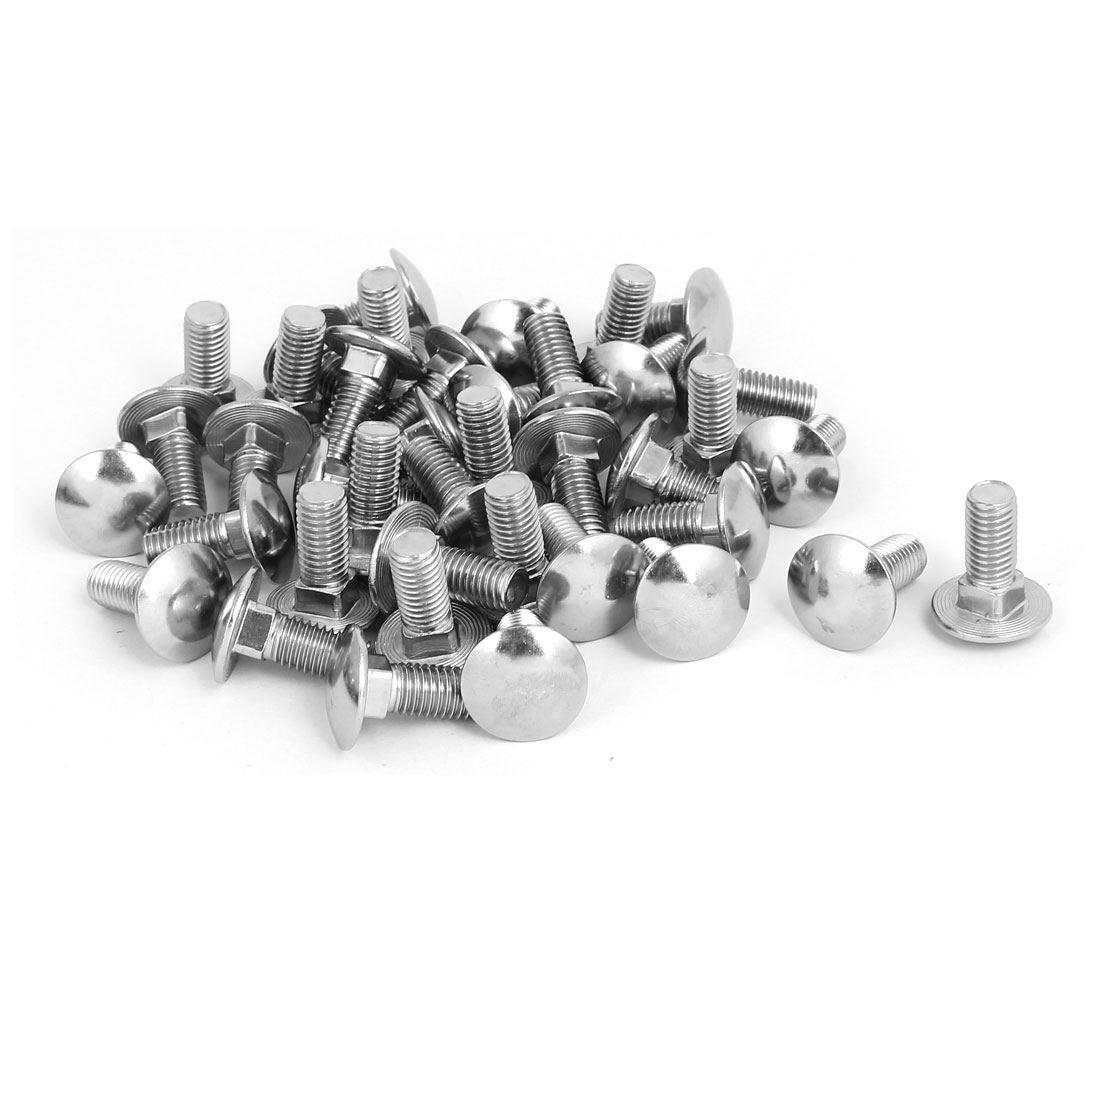 M10 x 25mm 304 Stainless Steel Round Cap Square Neck Carriage Bolts DIN603 40PCS